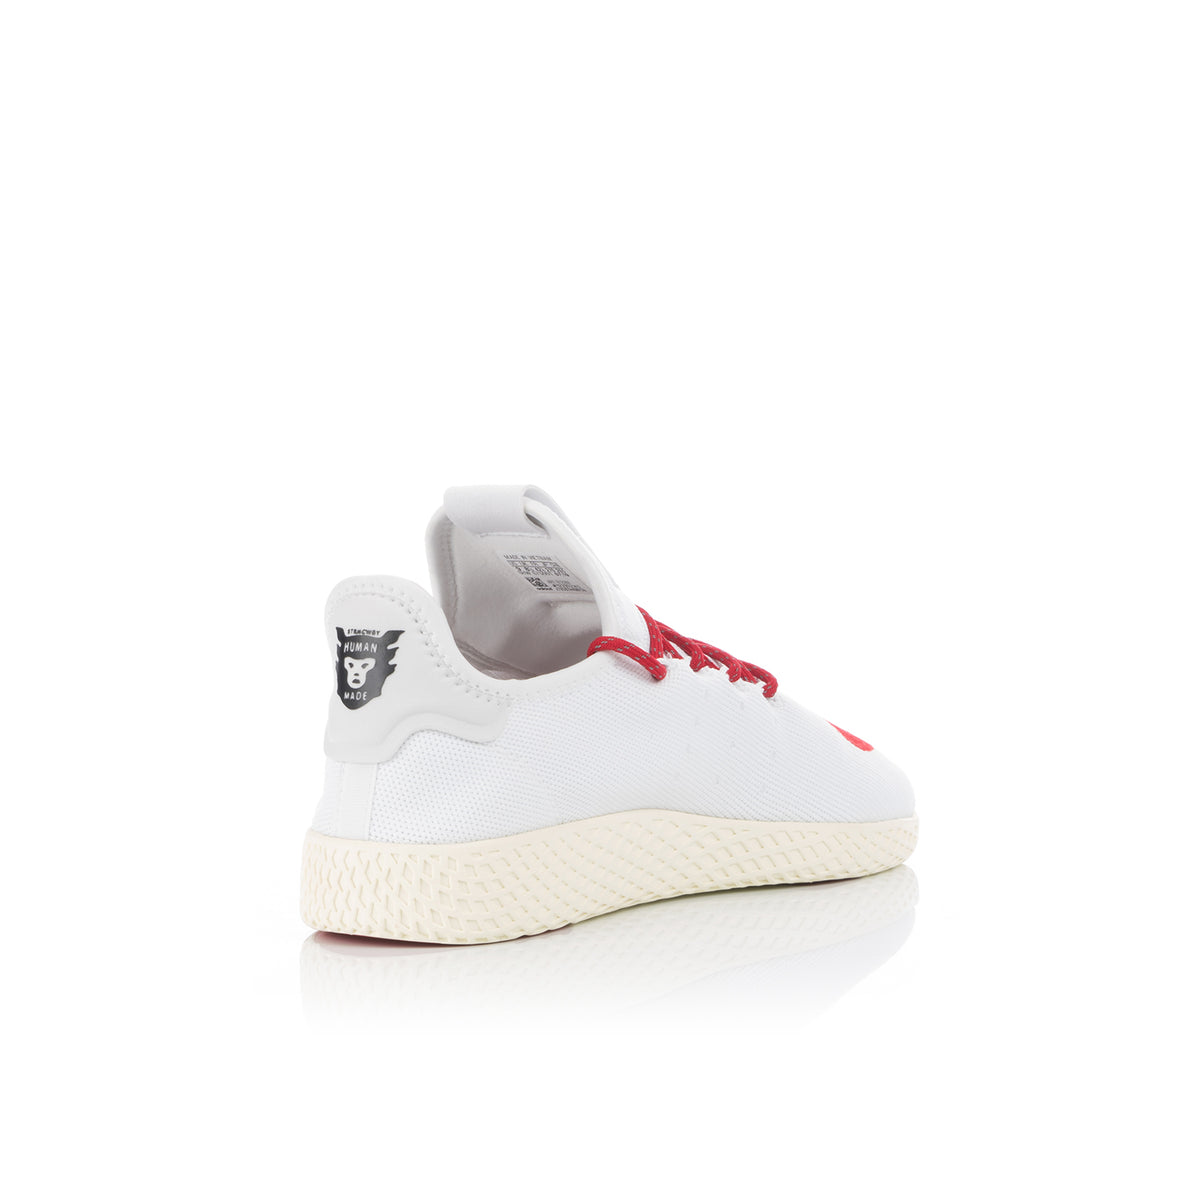 adidas Originals x Pharrell Williams Tennis Hu Human Made Cloud White Scarlet